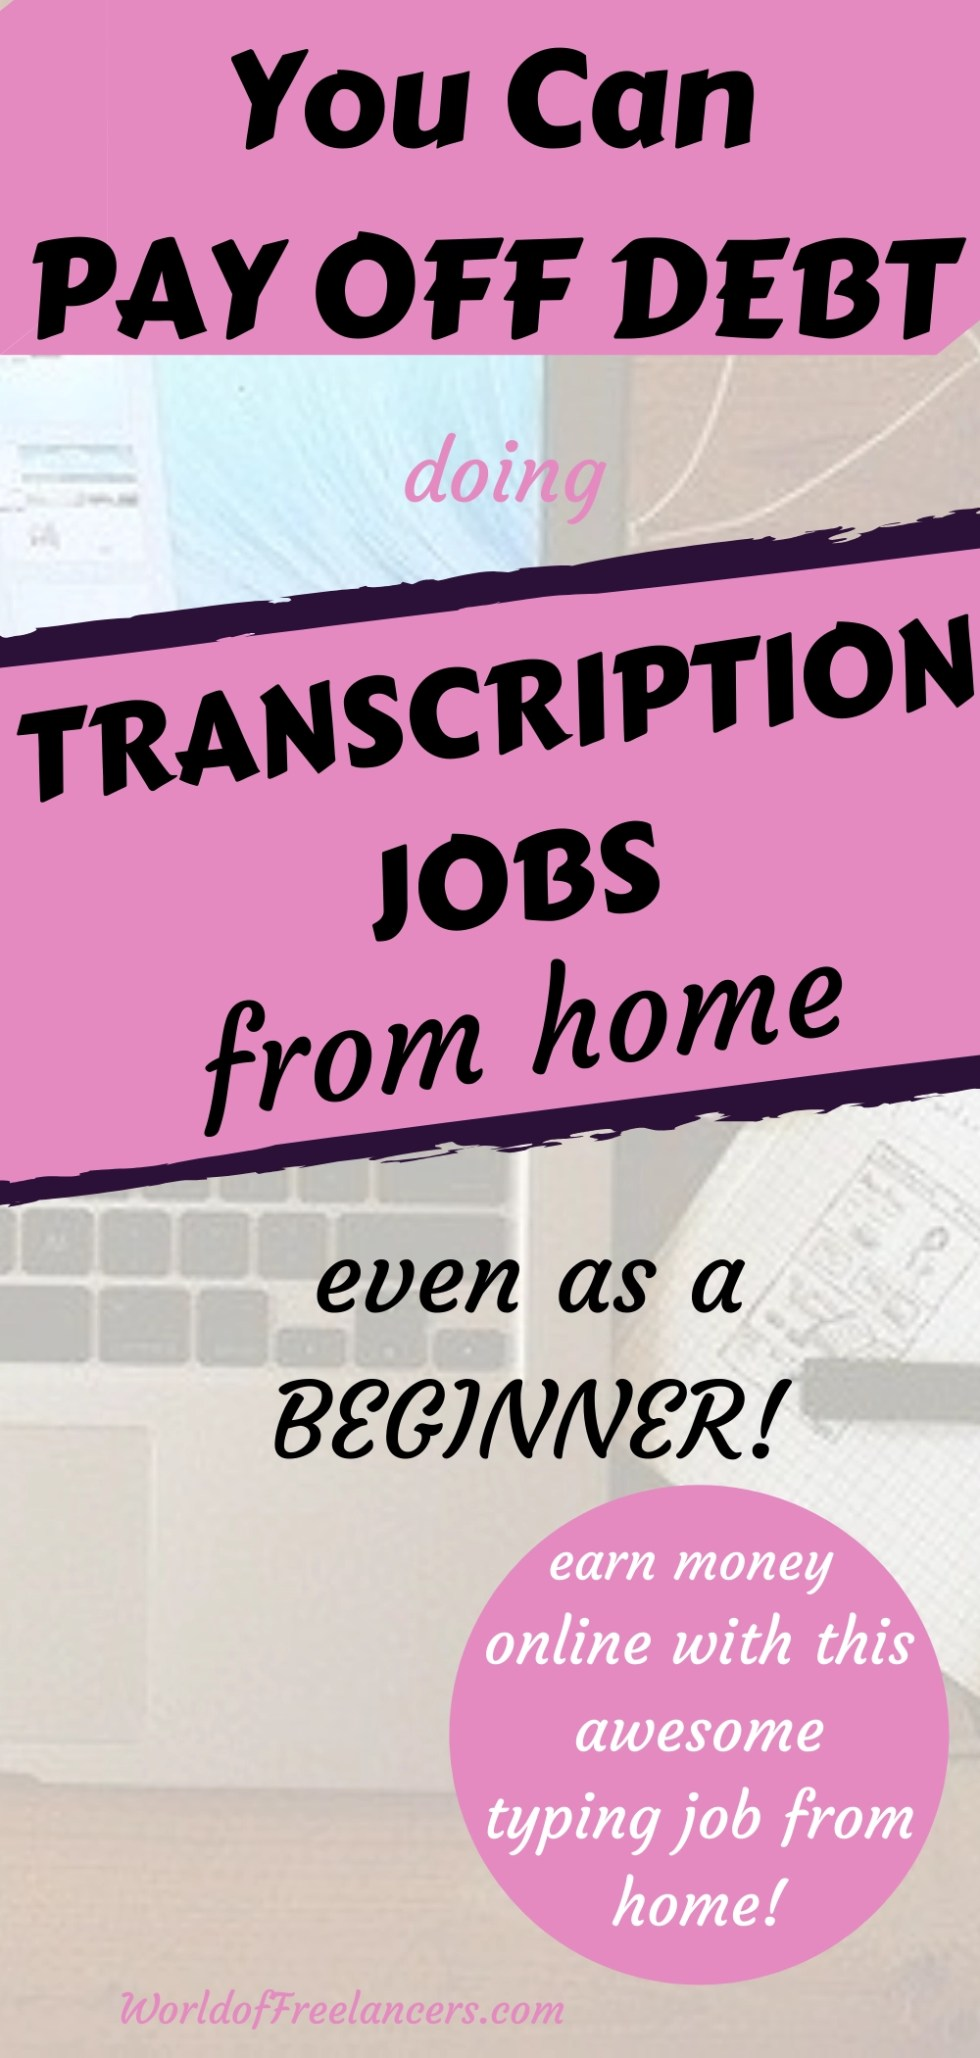 Laptop and desk accessories Pinterest image with pink, black and white text saying you can pay off debt doing transcription jobs from home even as a beginner